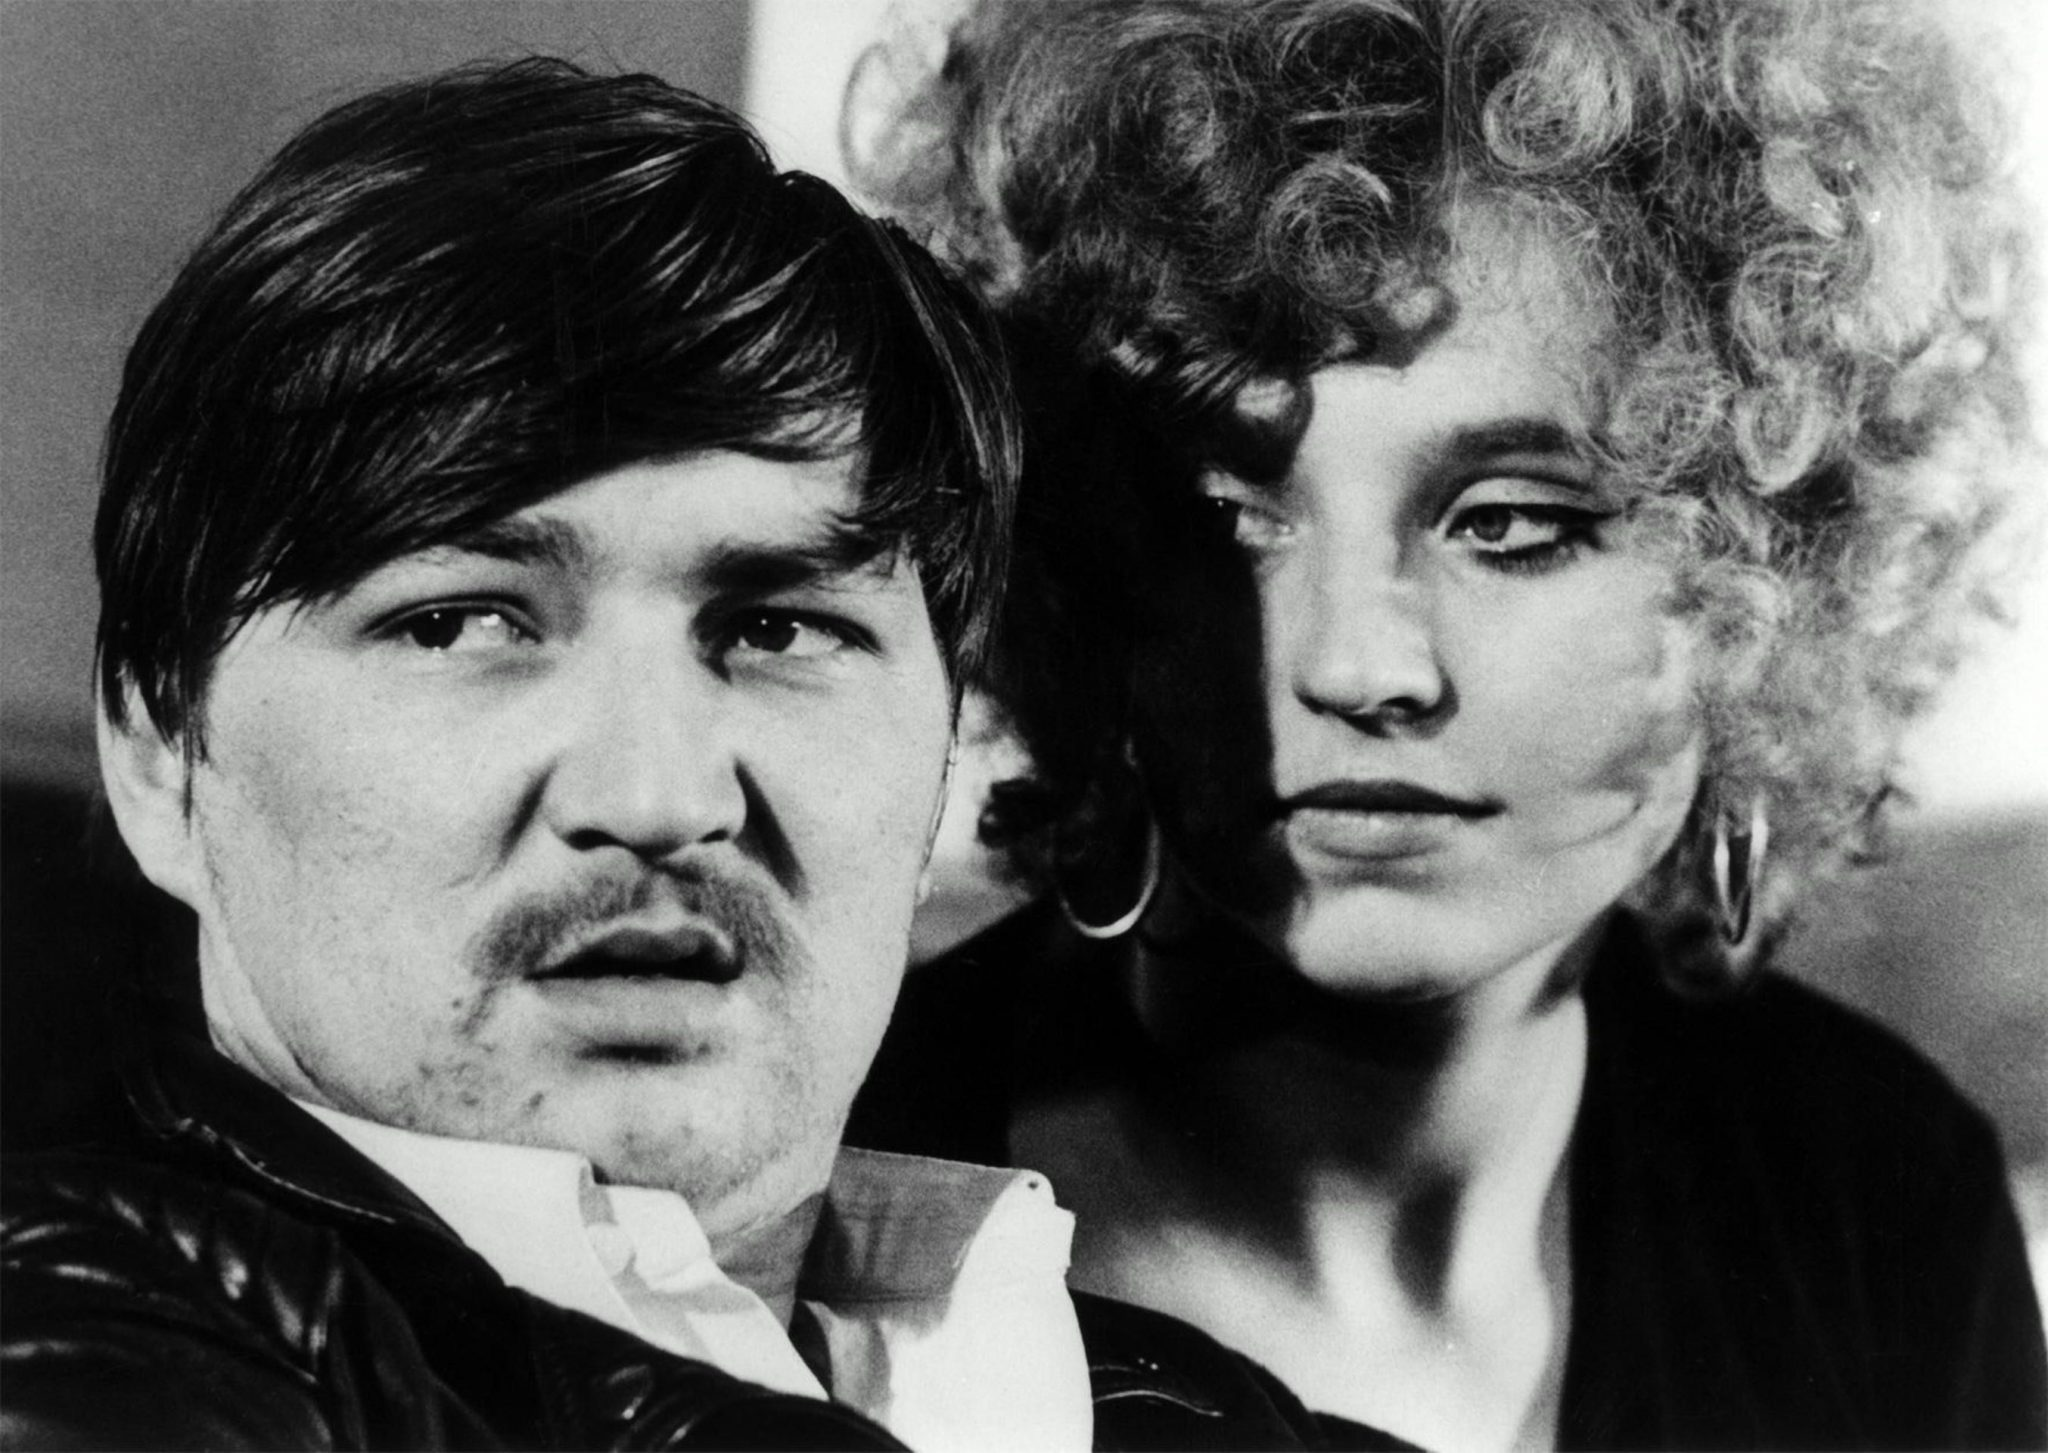 https://i1.wp.com/www.riotmaterial.com/wp-content/uploads/2018/05/Hanna-Schygulla-and-Rainer-Werner-Fassbinder-in-Baal.jpg?fit=2048%2C1453&ssl=1